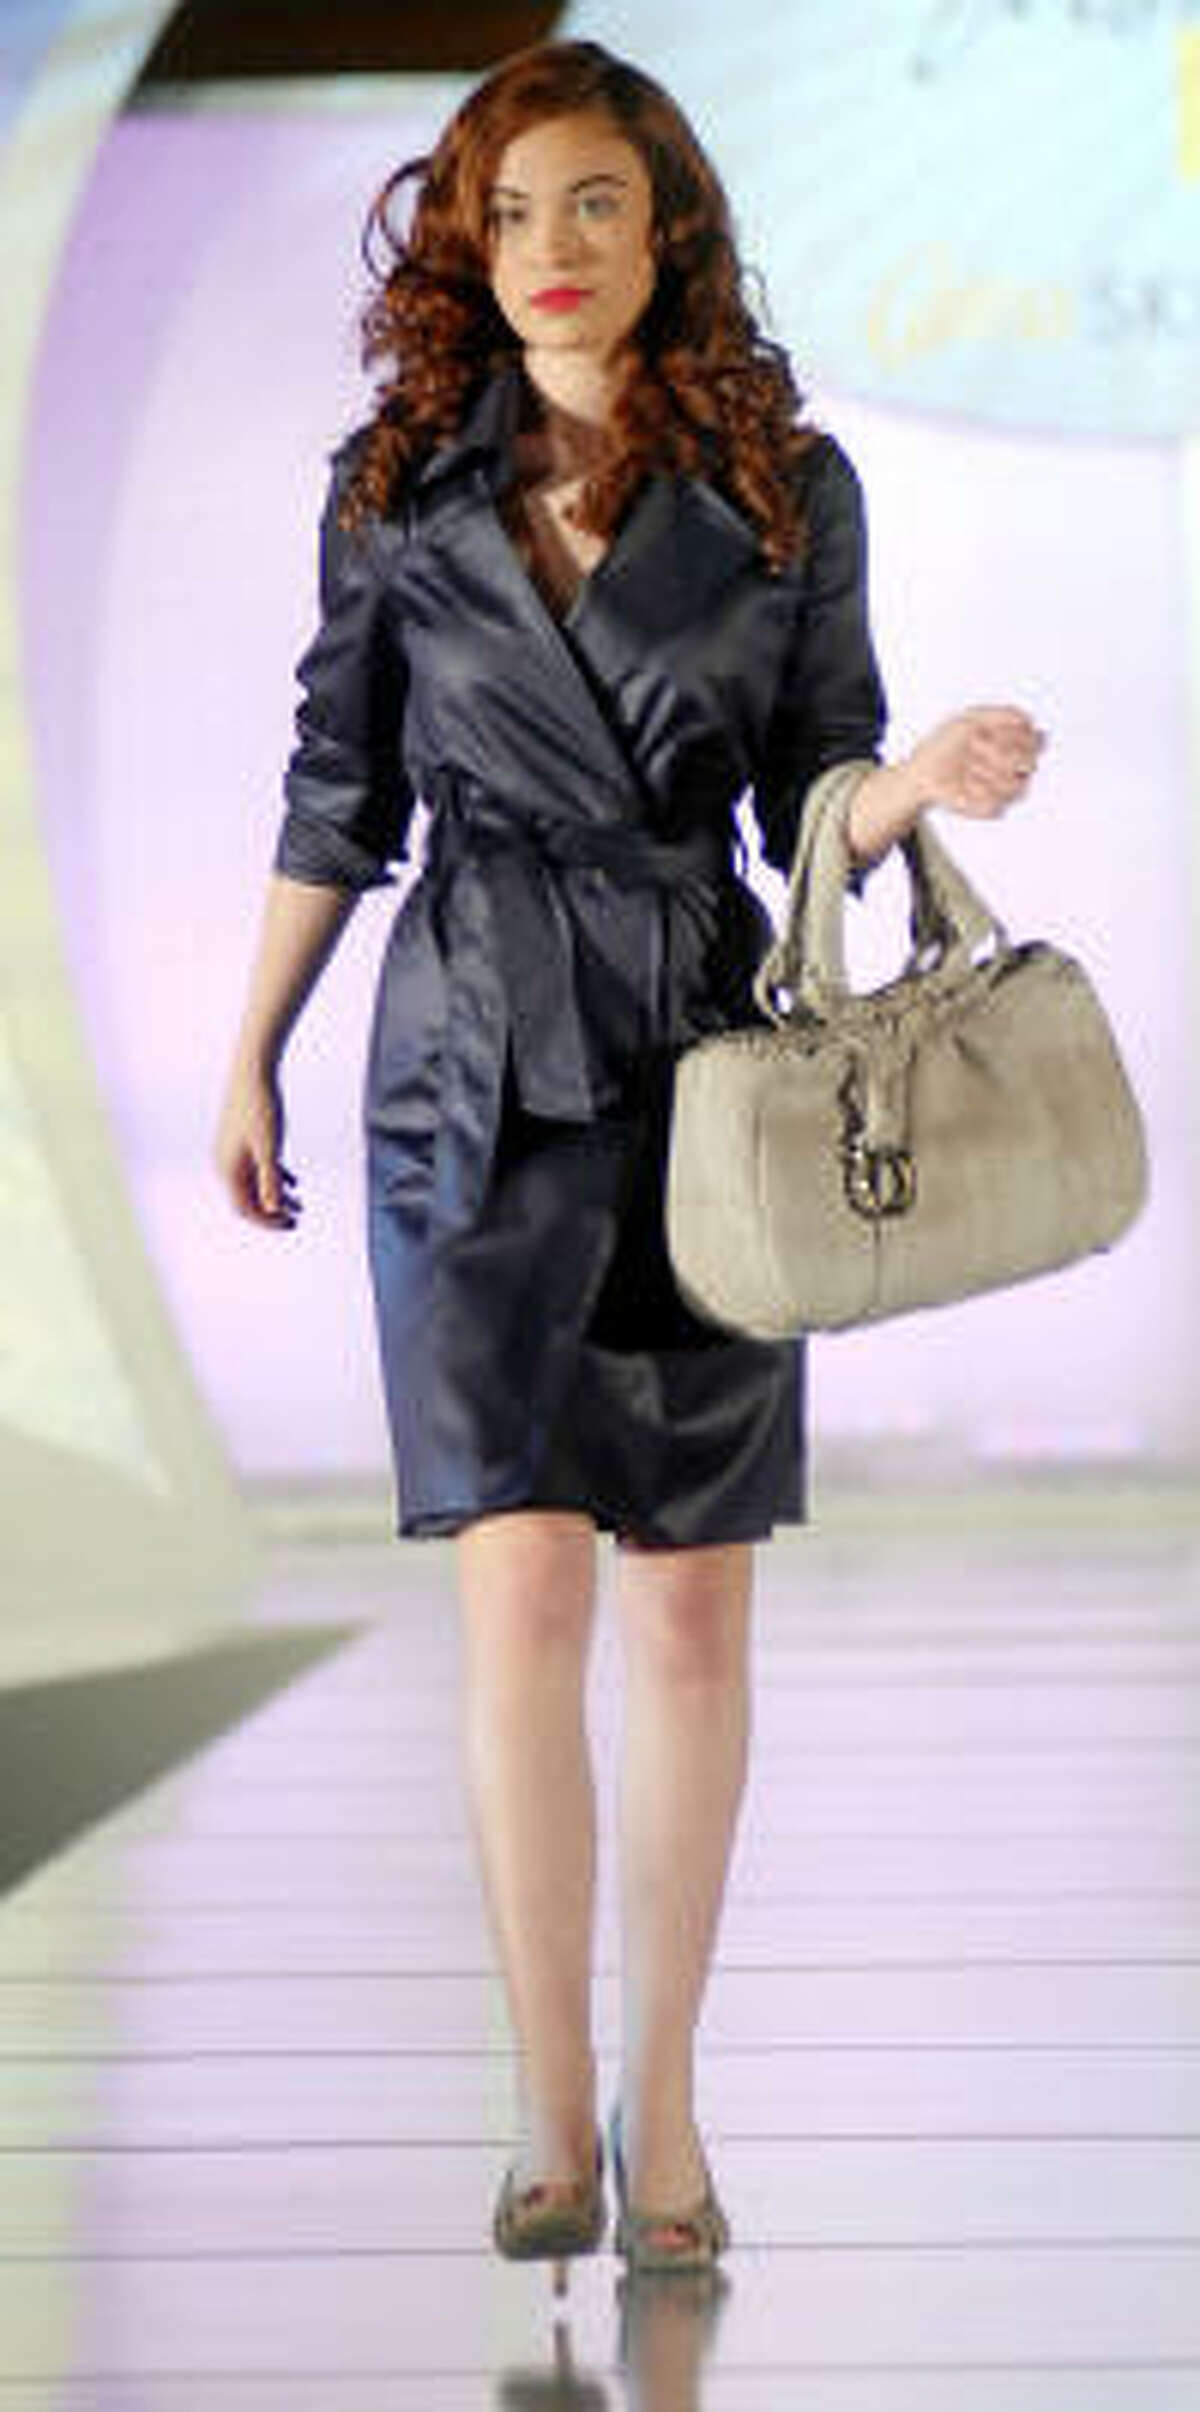 A Salvatore Ferragamo black trench is a classic for spring.